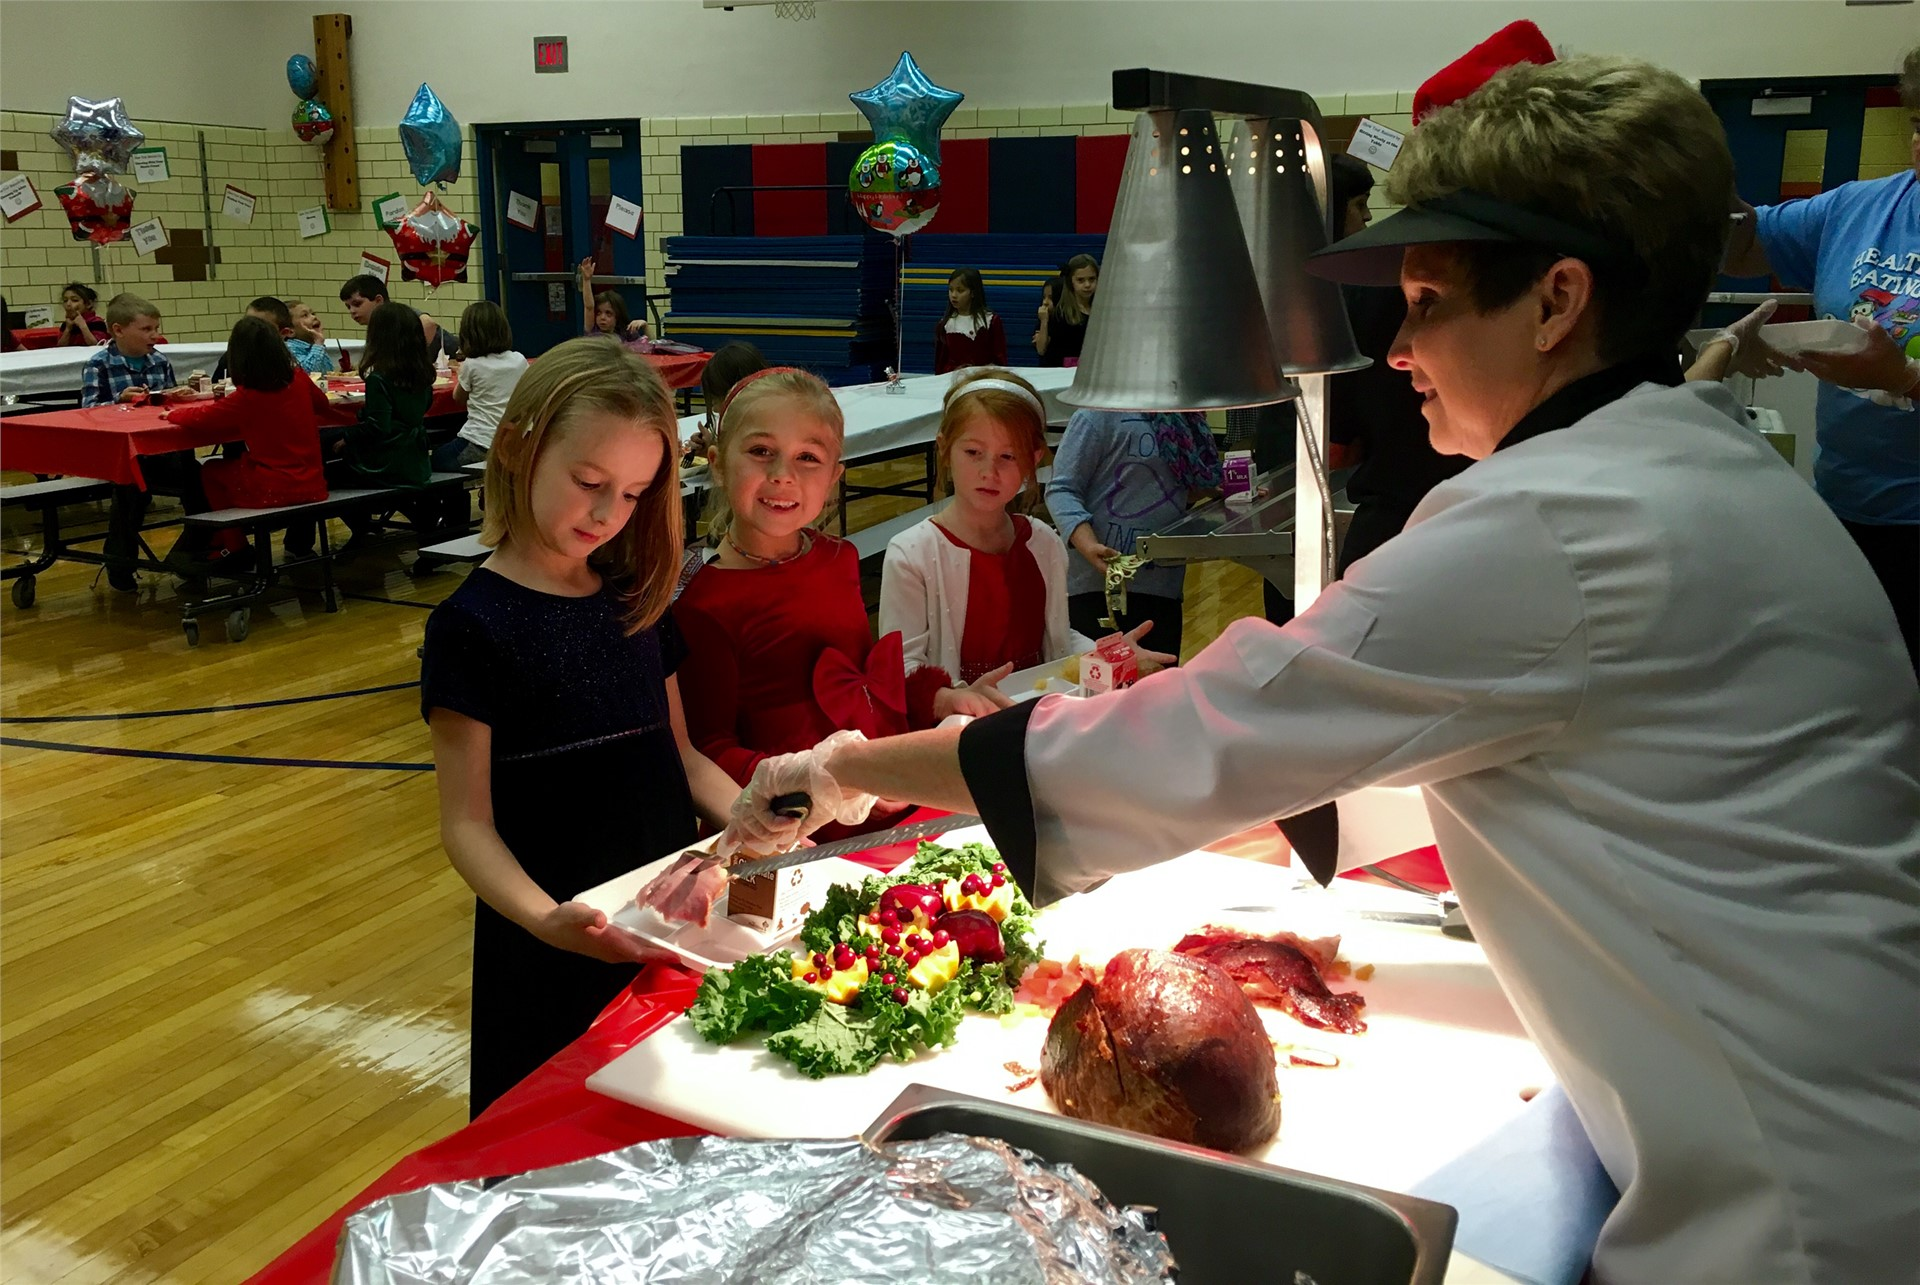 Students enjoy the holiday carving lunch.